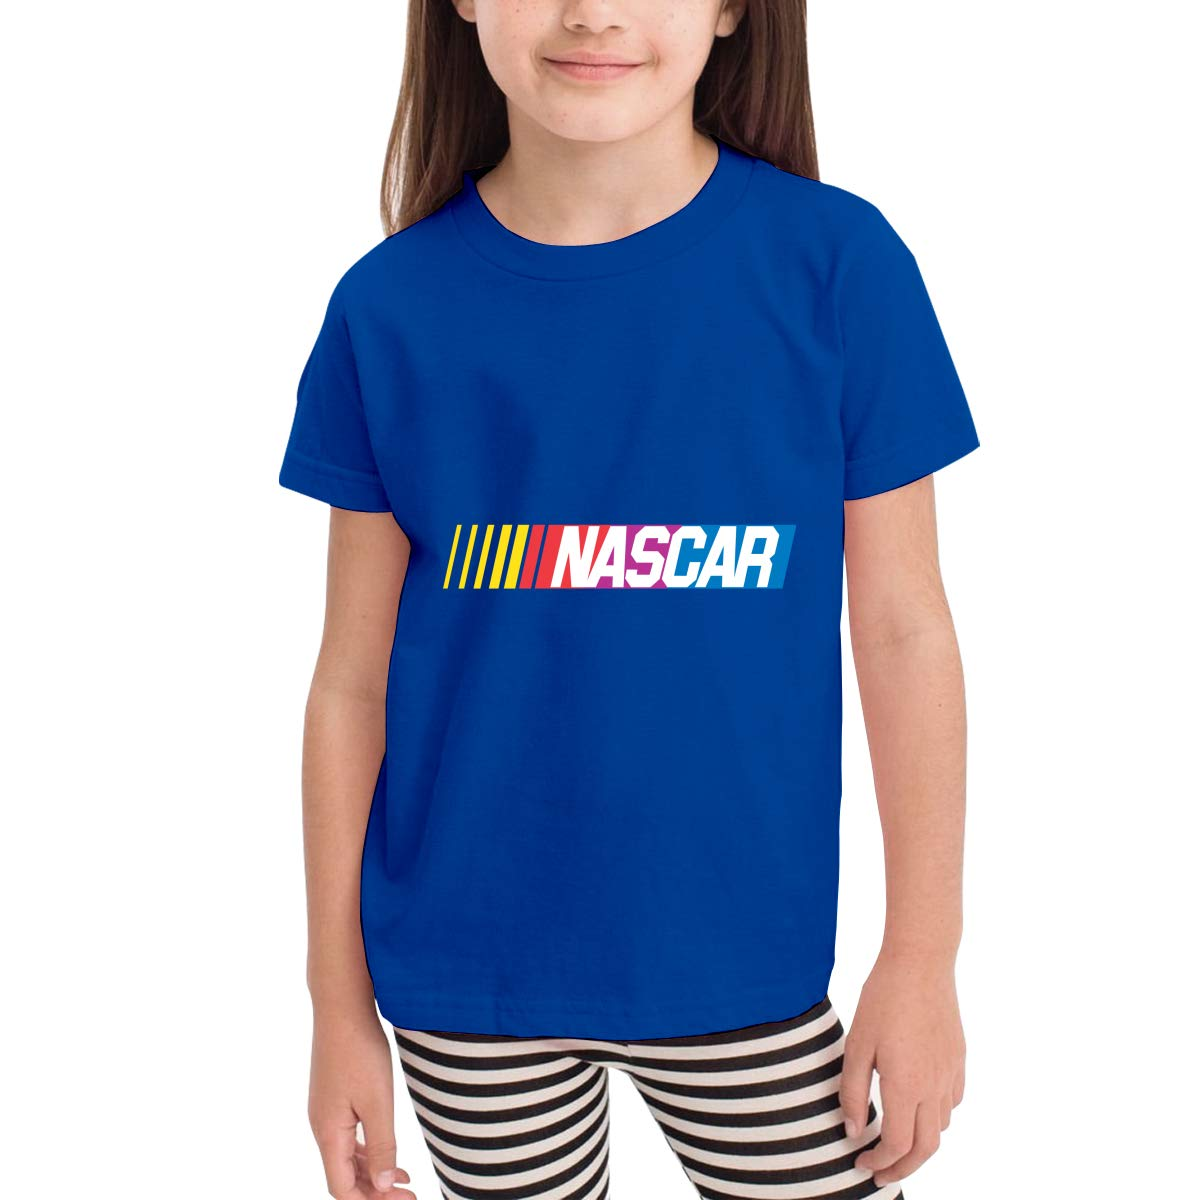 Kids Boys Girls Tee Shirts NASCAR Logo Shirt Toddler T-Shirt Short Sleeve Cotton Summer Clothes